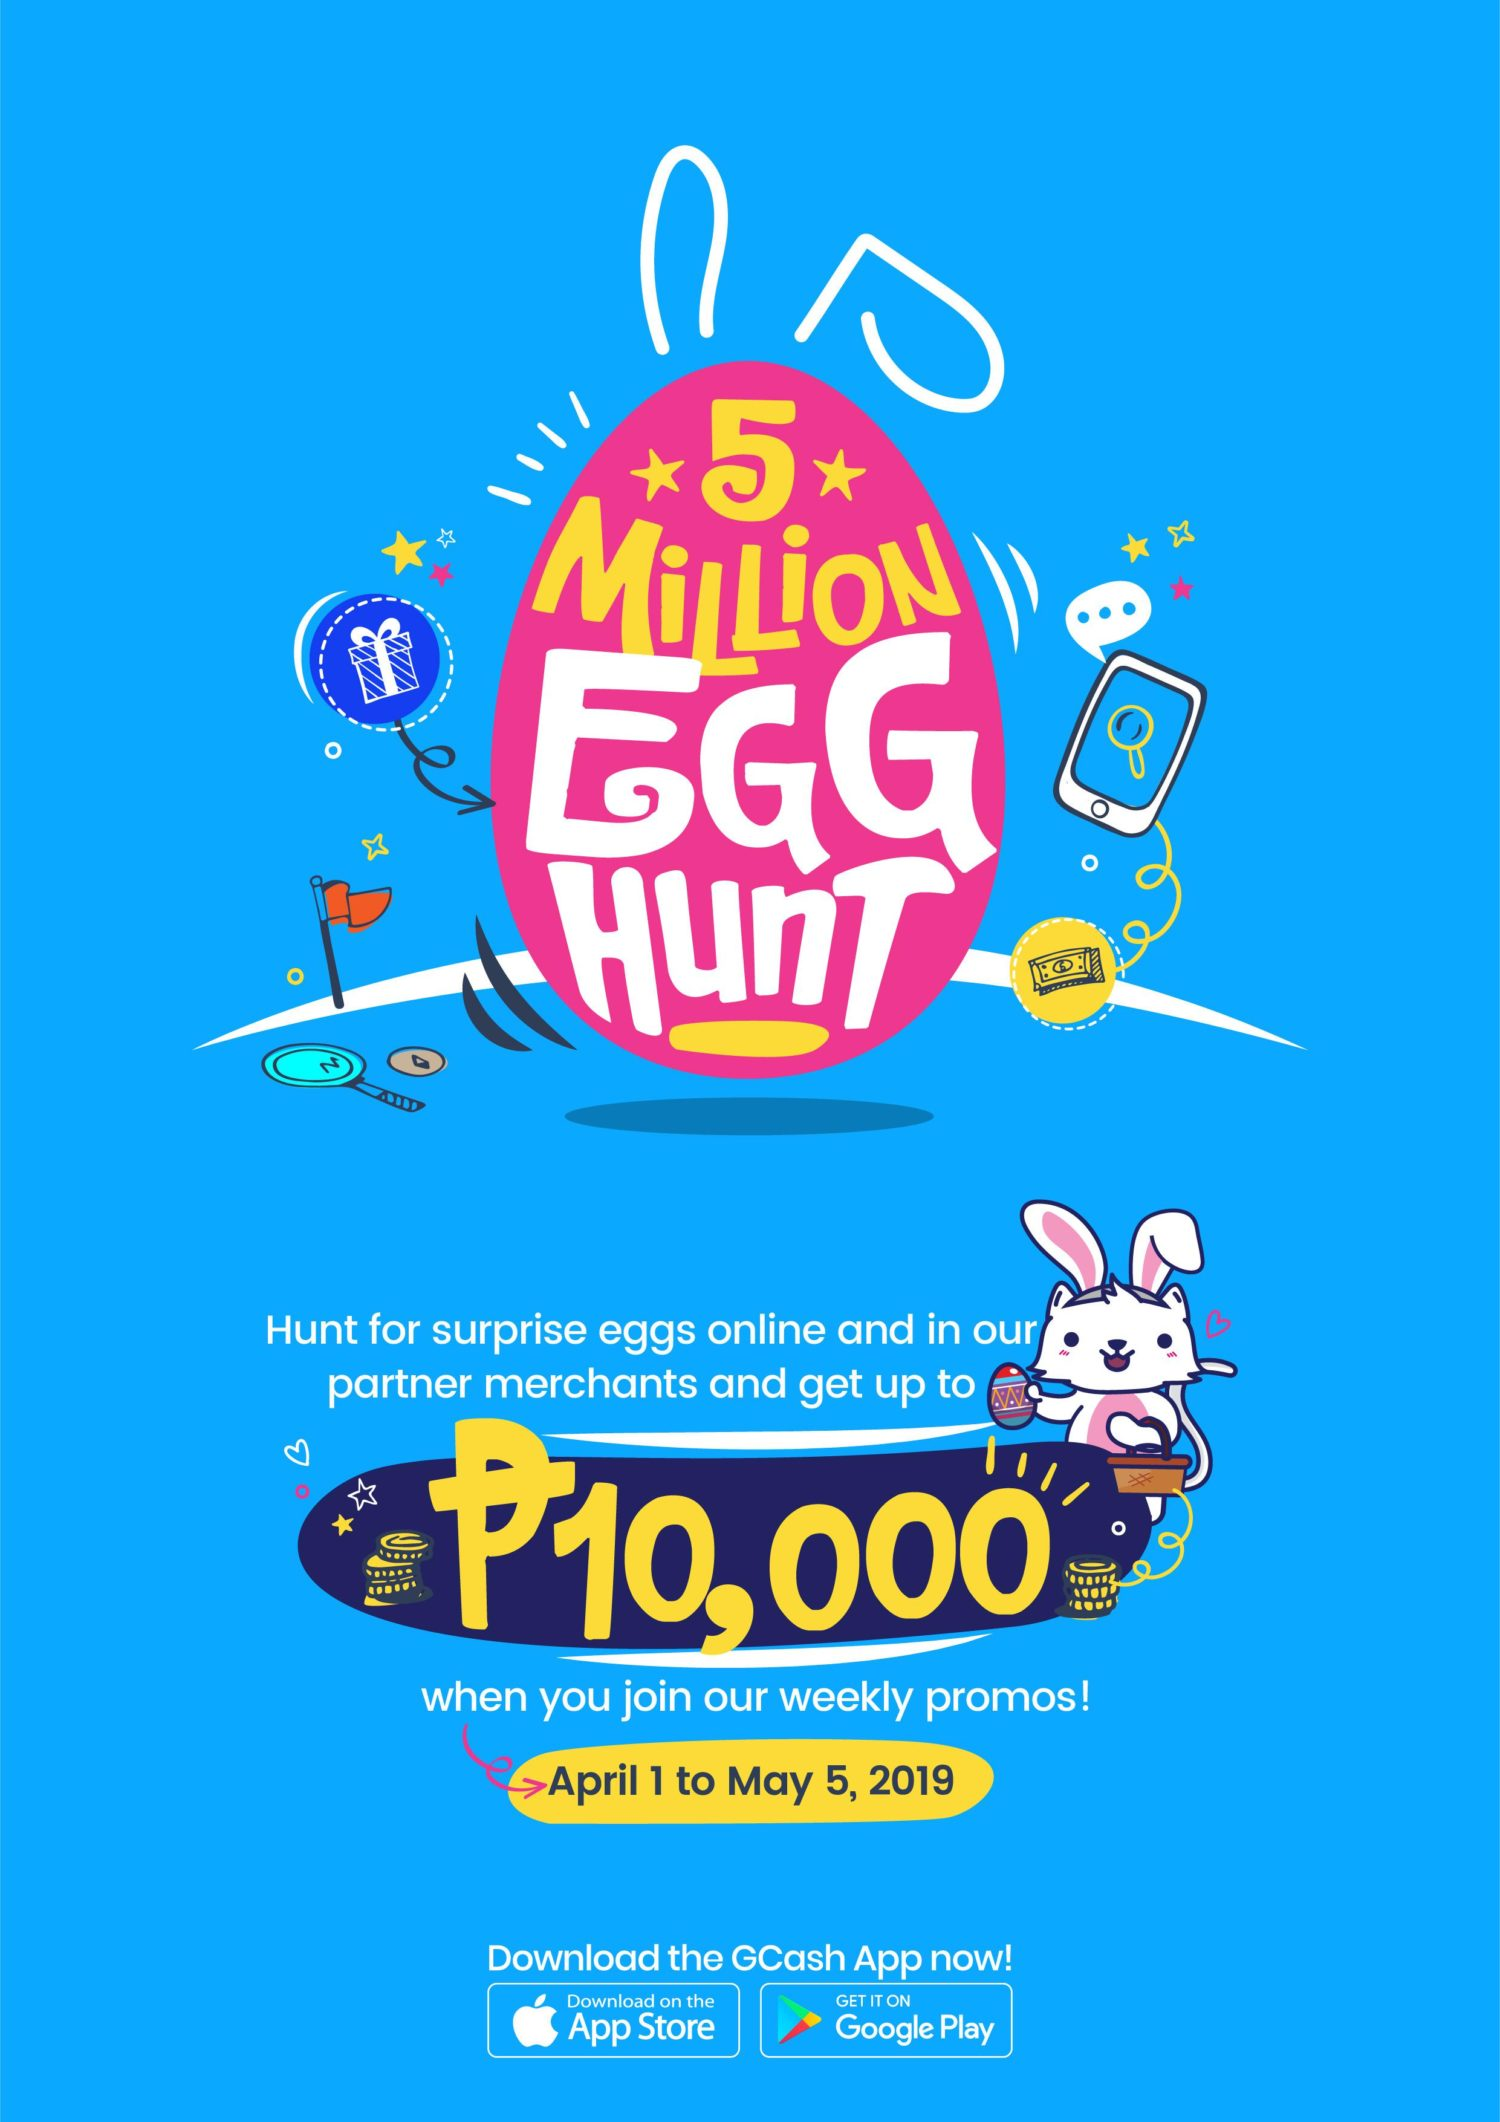 P5 Million in Prizes this to be Given Away this Easter with GCash